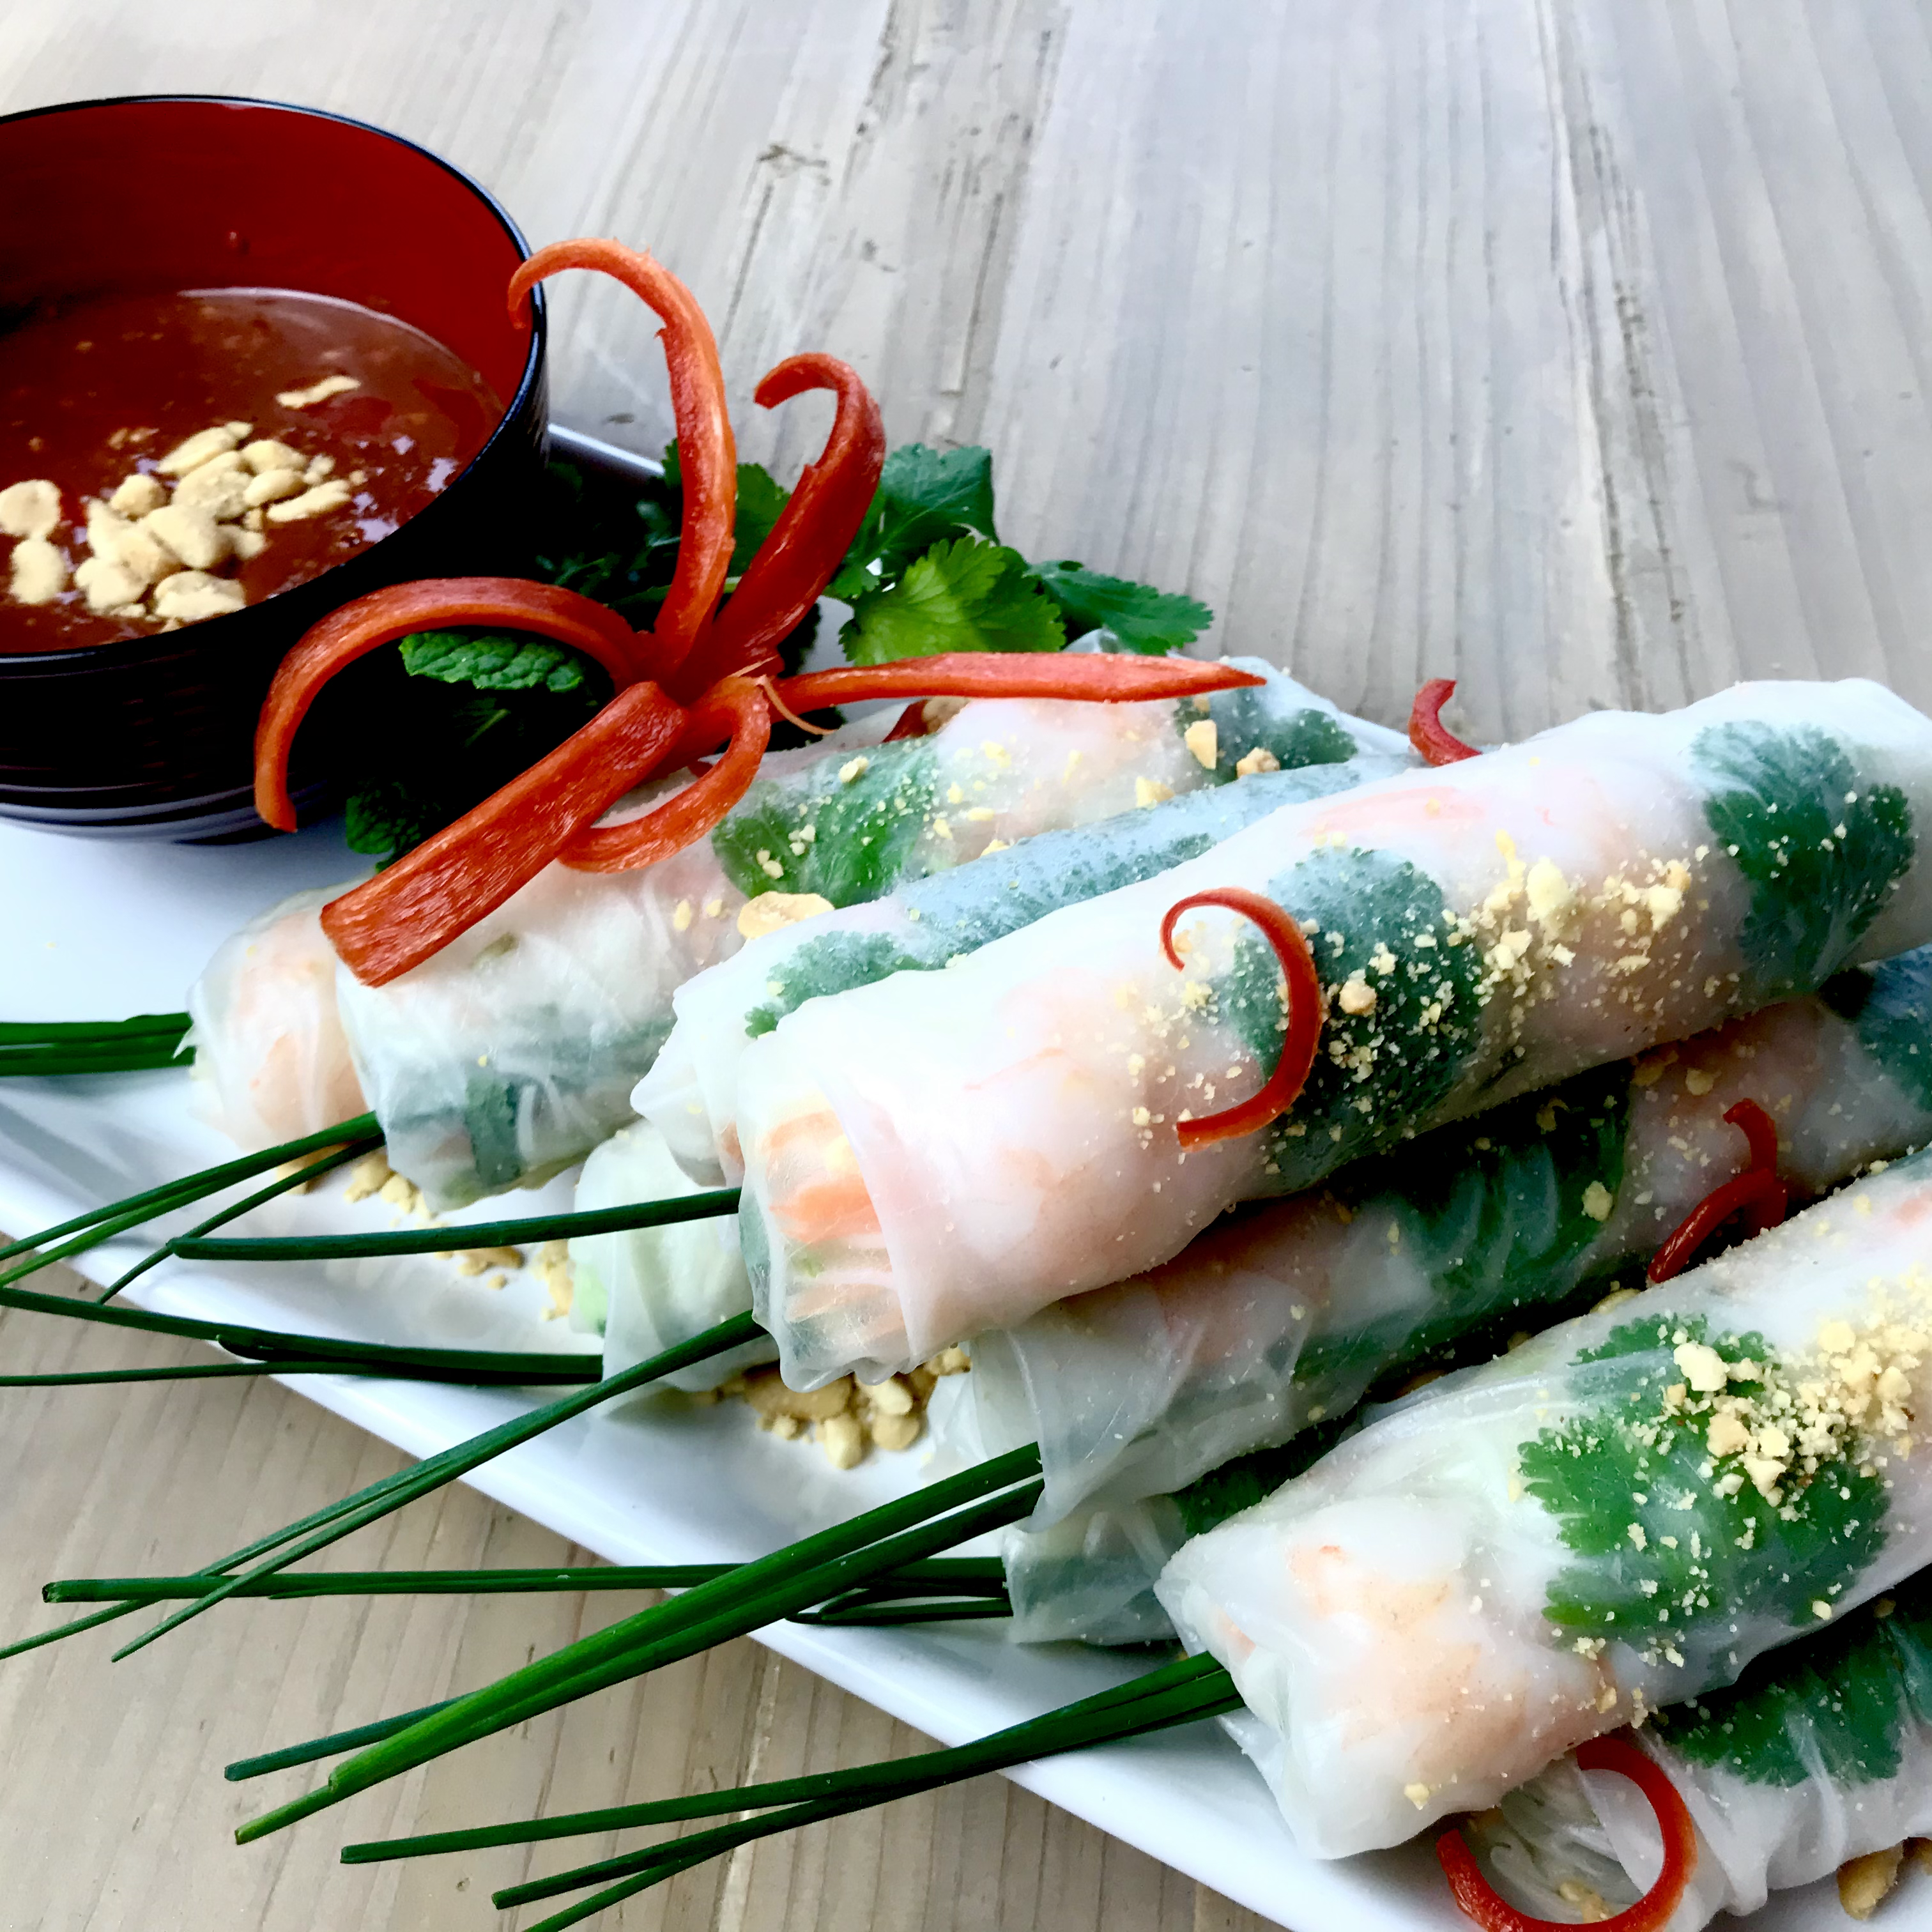 Summer rolls with chive garnish